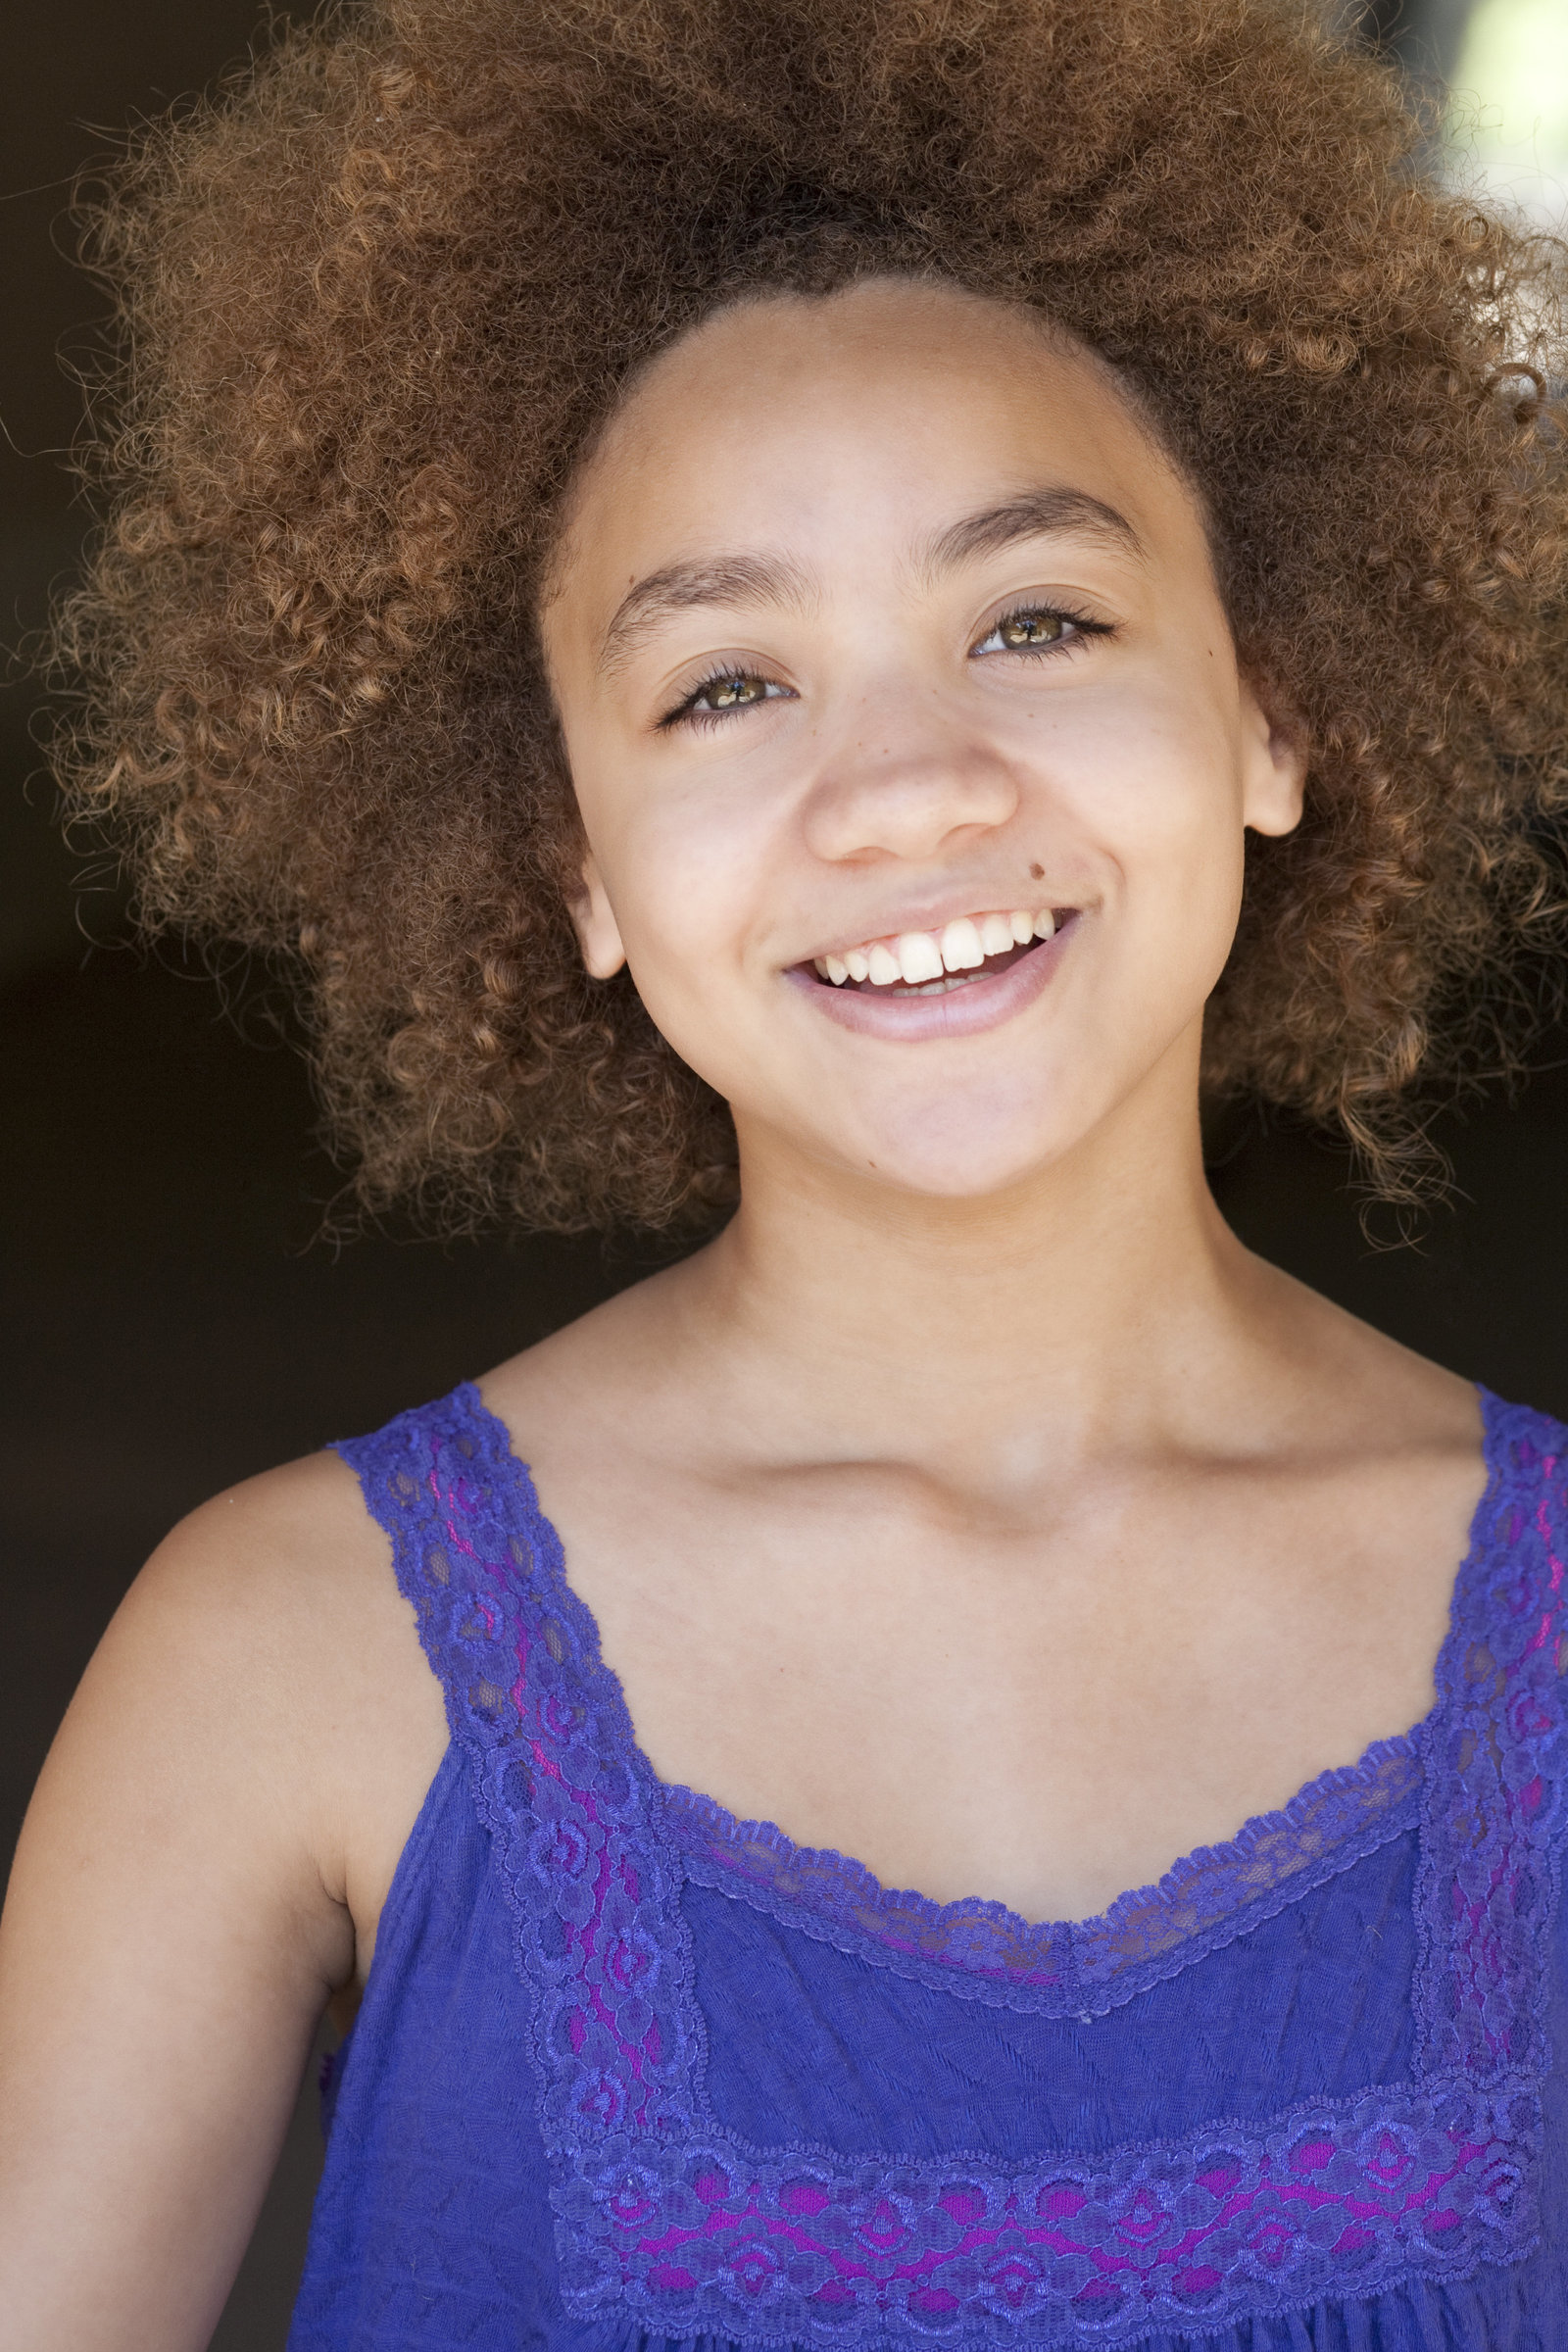 NYC Child Headshot